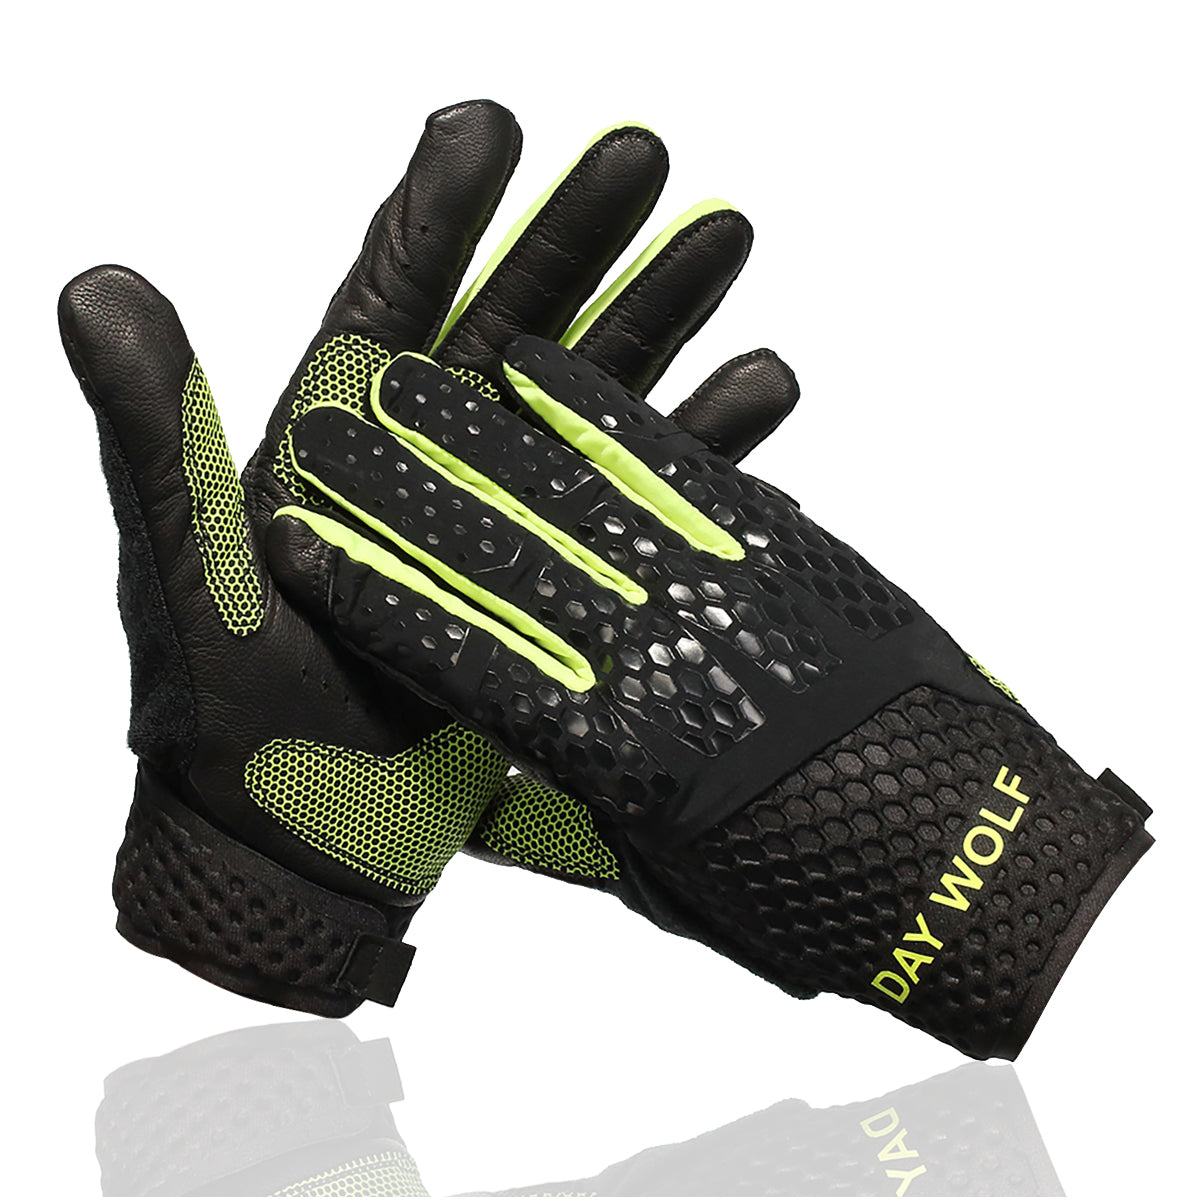 Full Finger Fitness Gloves Gym Workout Weight Lifting Exercise for Men & Women Green